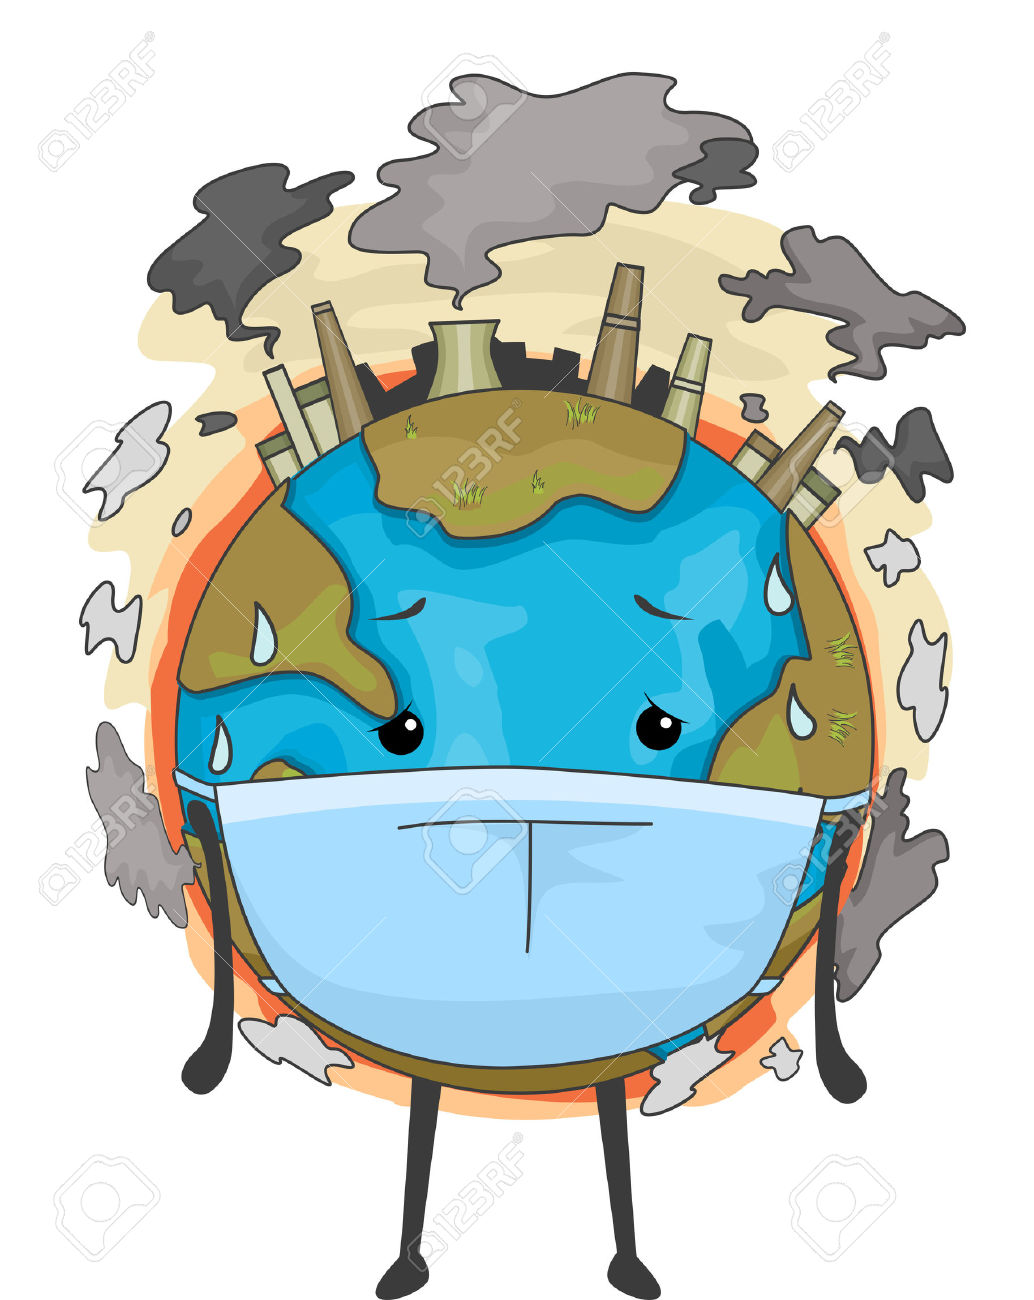 Poster on air pollution clipart.